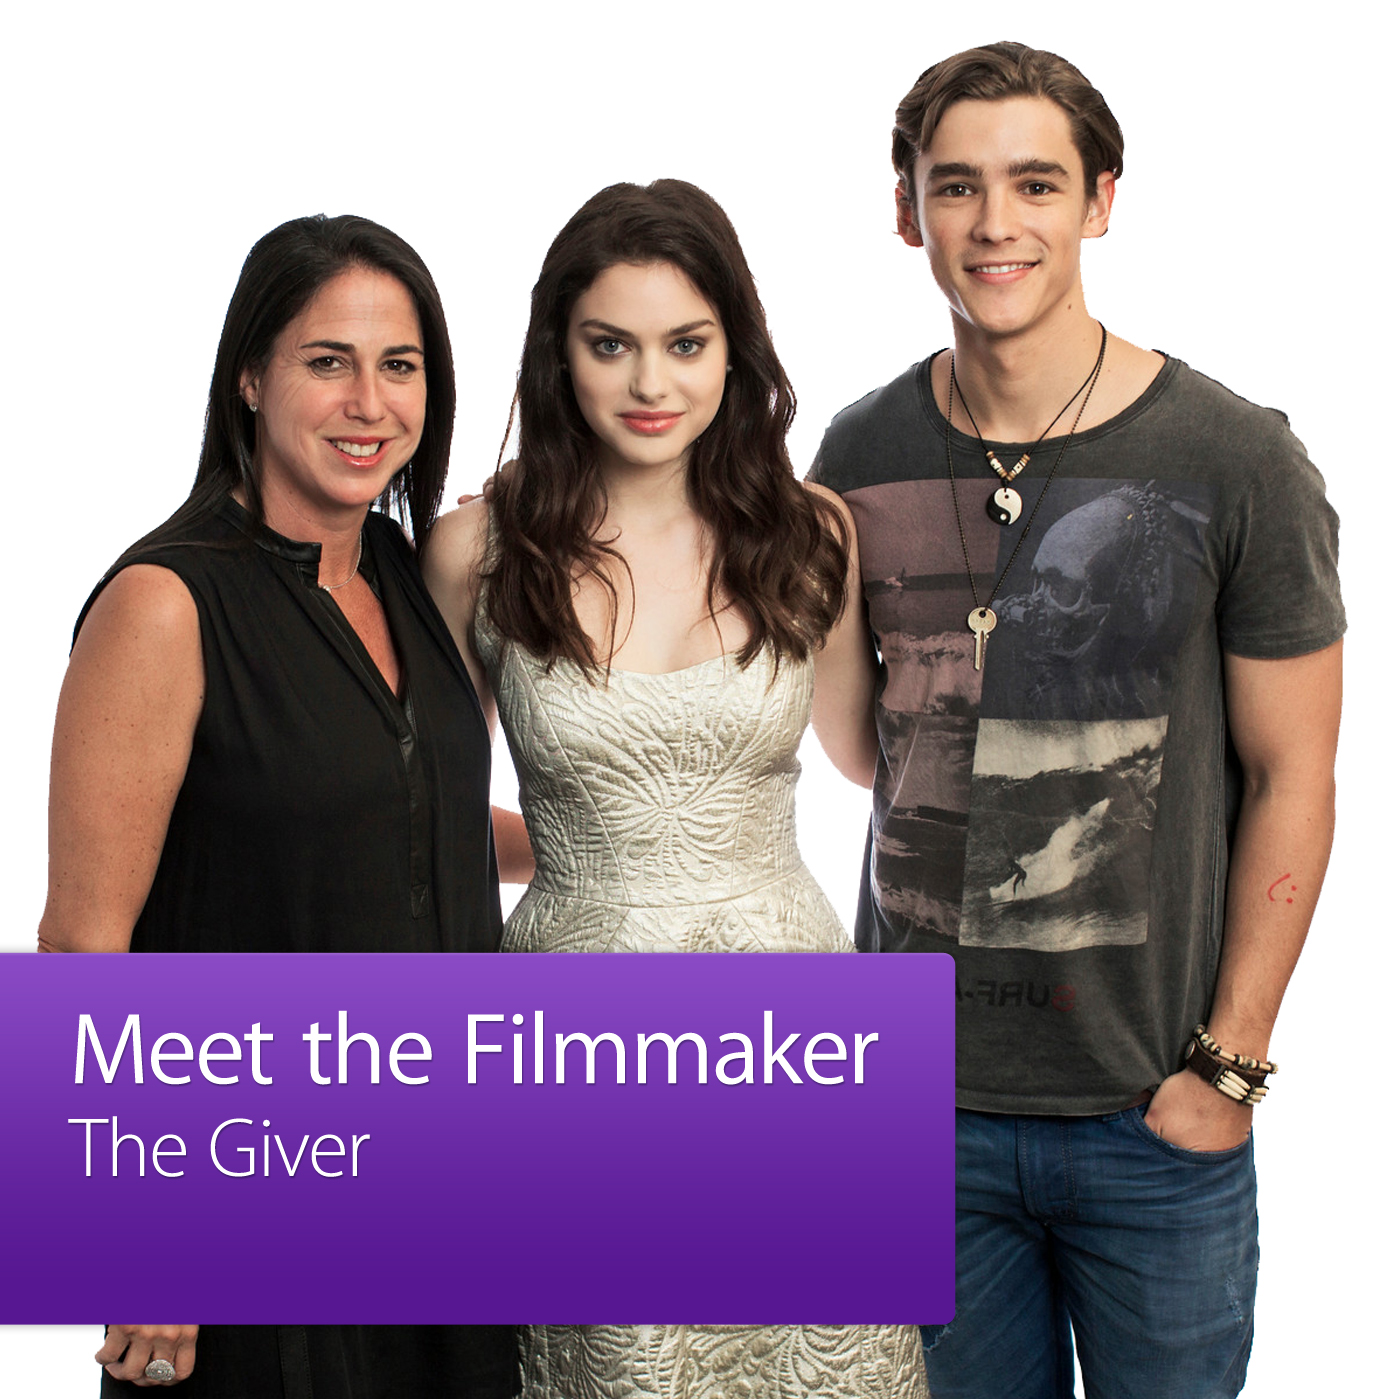 Nikki Silver, Brenton Thwaites, and Odeya Rush: Meet the Filmmaker